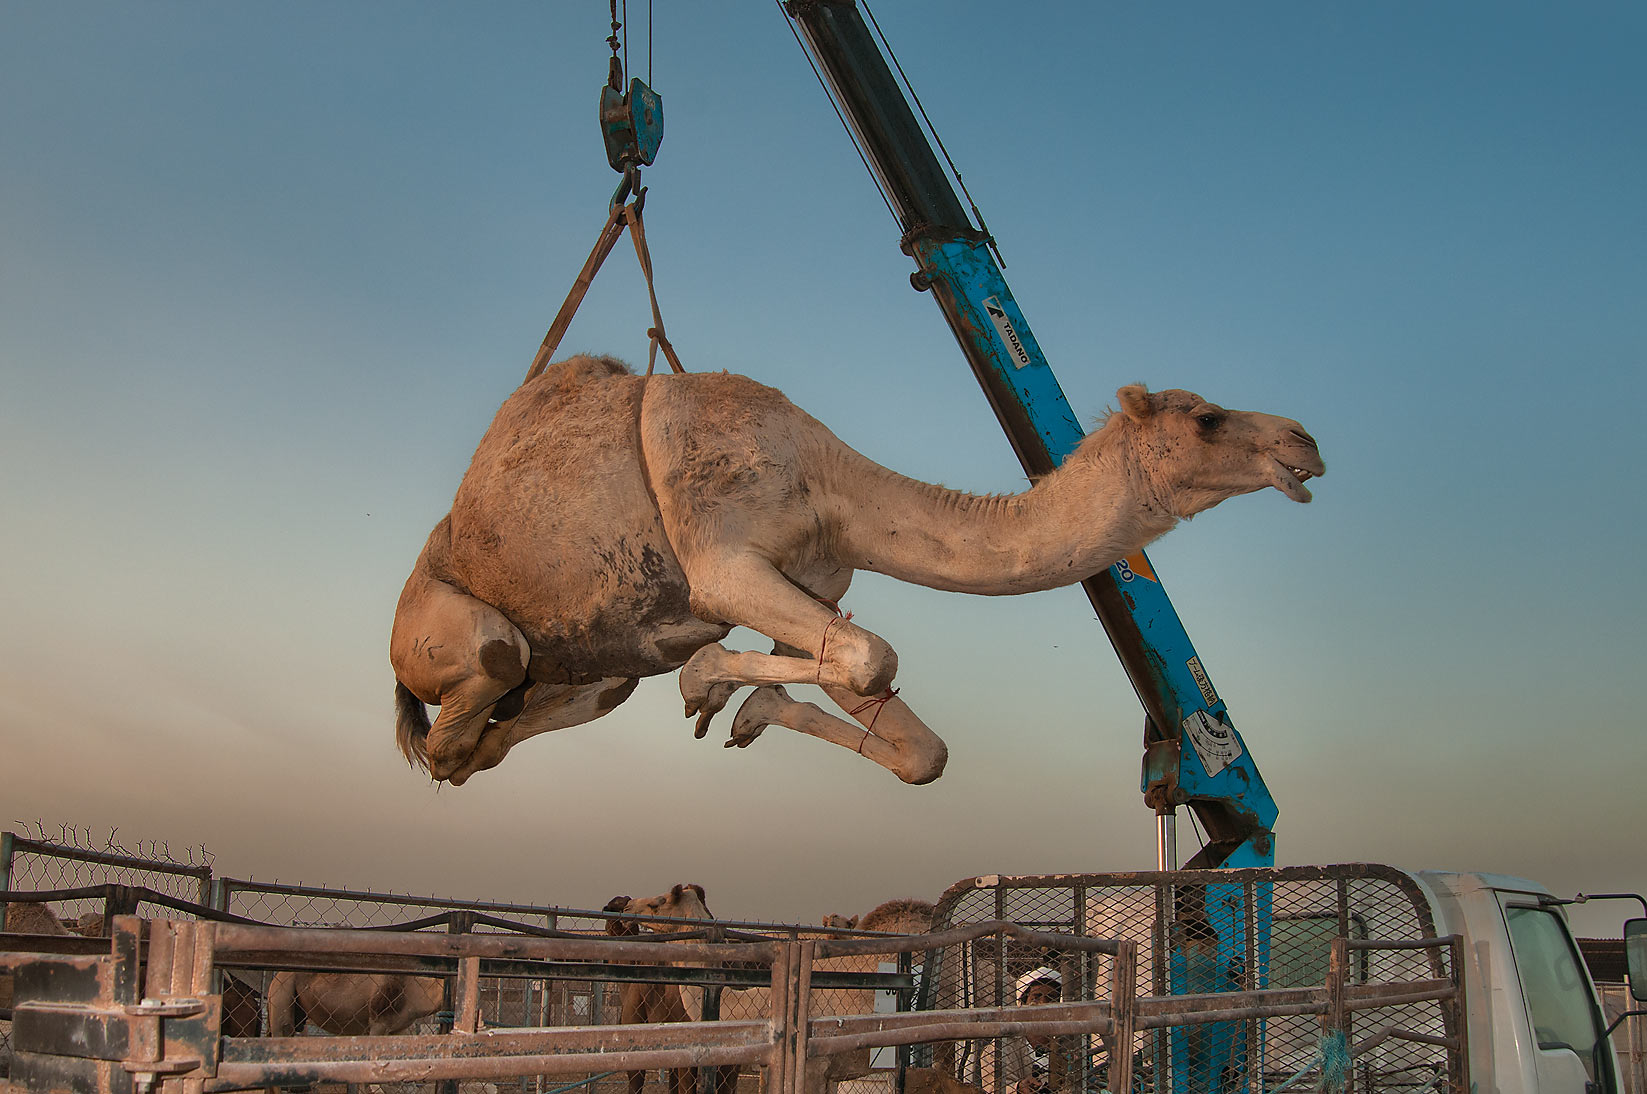 Camel plucked by a hydraulic crane into the air in Camel Market (Souq). Doha, Qatar